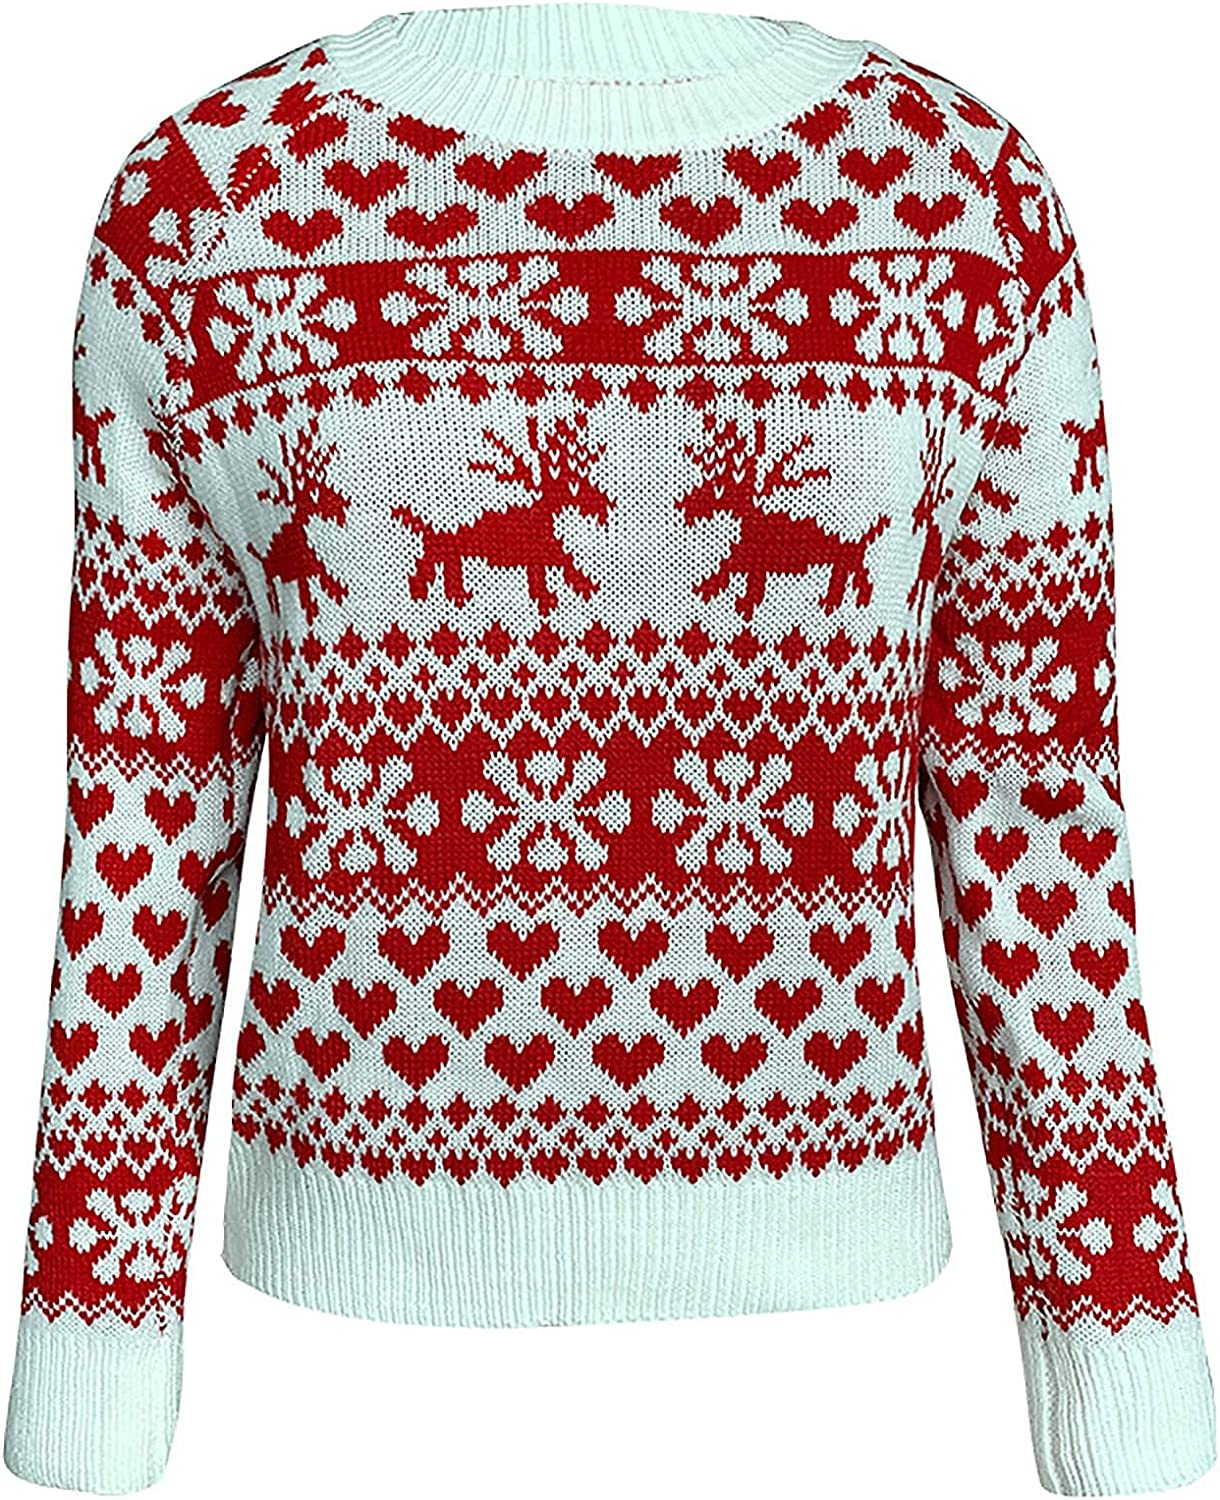 Kanzd Christmas Sales Ranking TOP8 Crewneck Sweaters for Long Sleeve Fashion Women